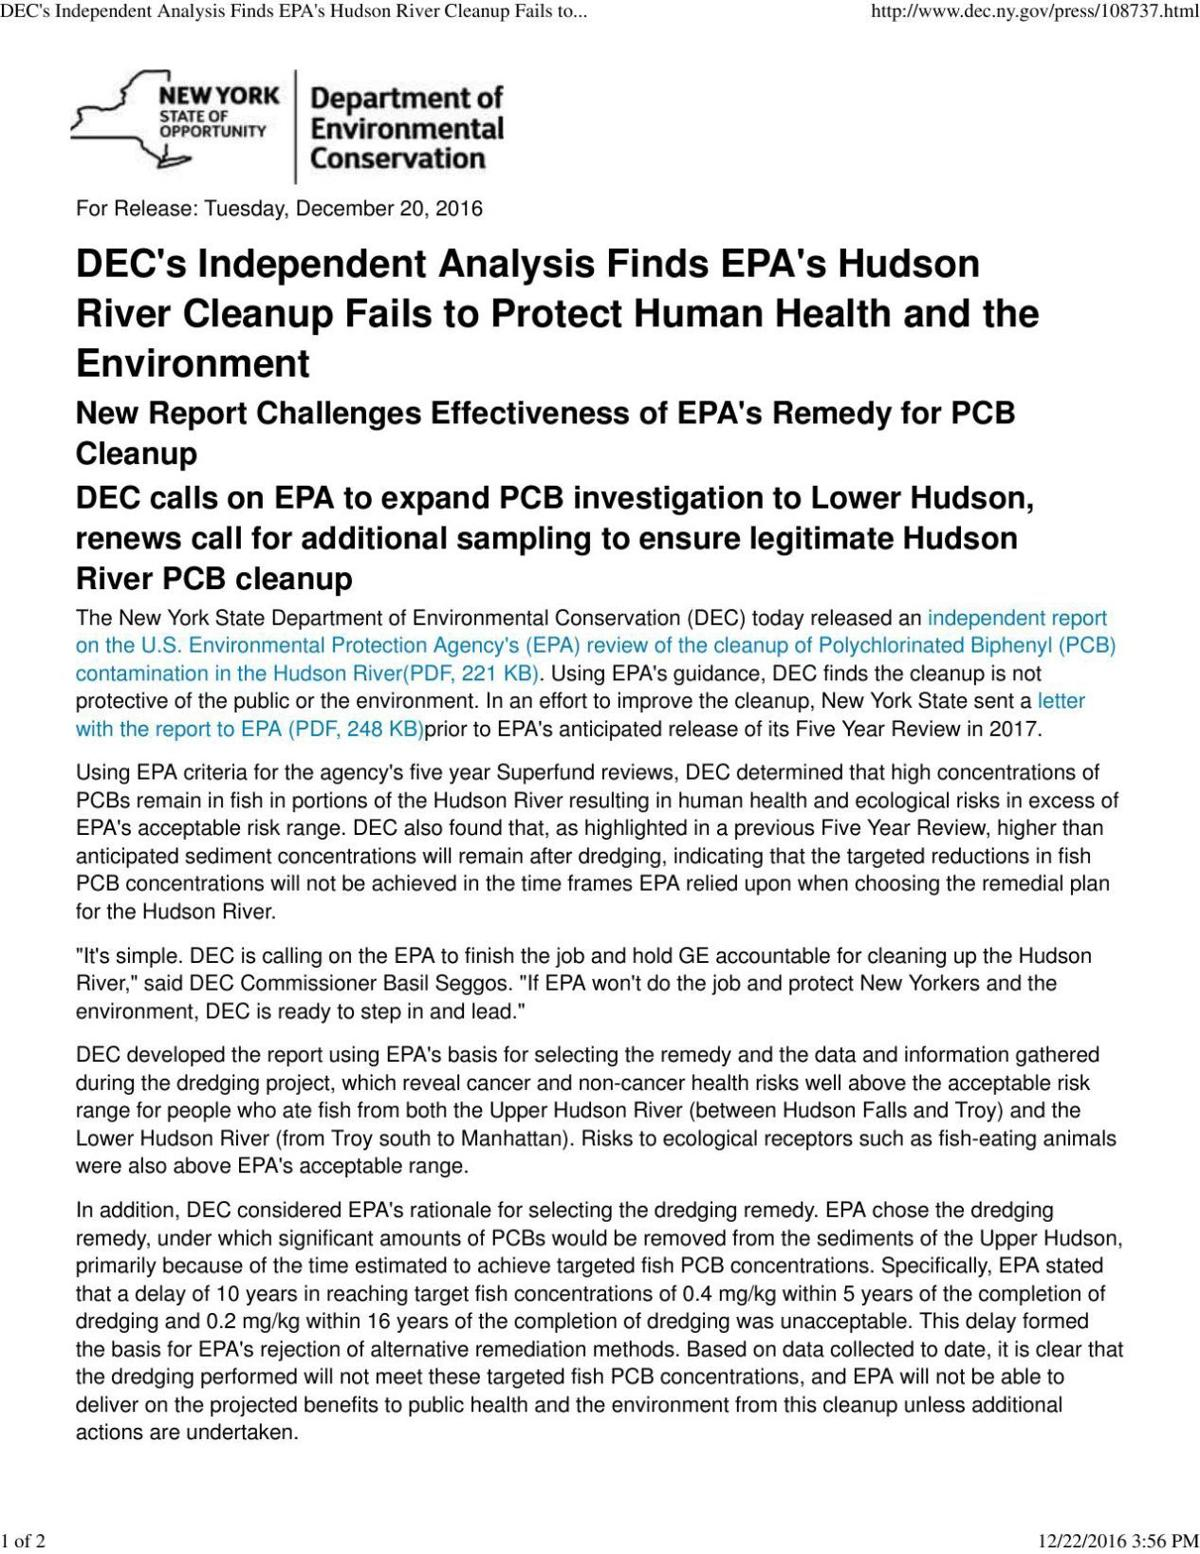 Decs Independent Analysis Finds Epas Hudson River Cleanup Fails To